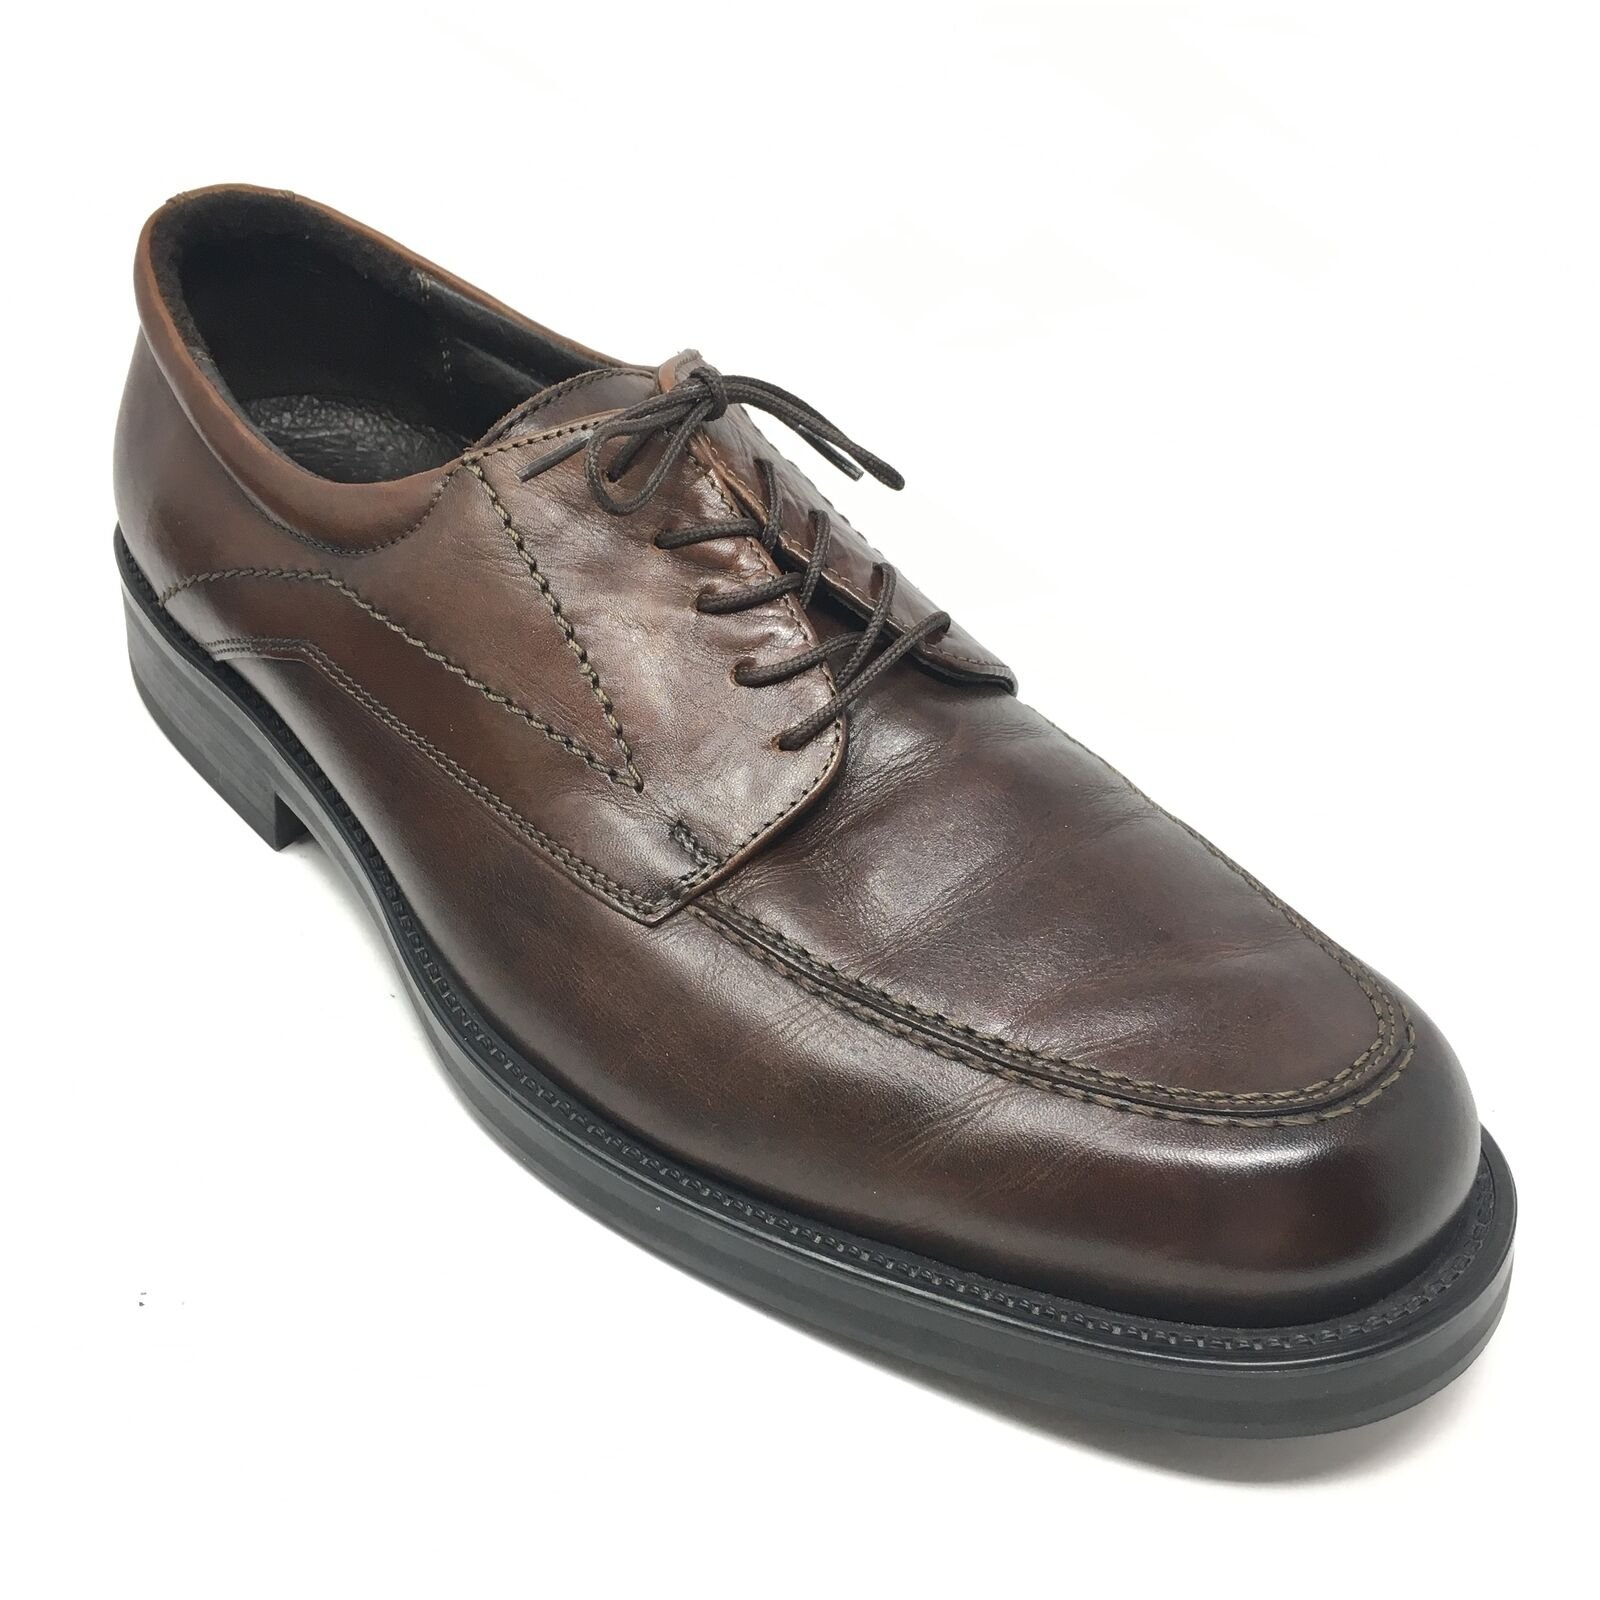 Men's Bostonian Oxfords Dress shoes Size 11.5M Brown Leather Made  AF8